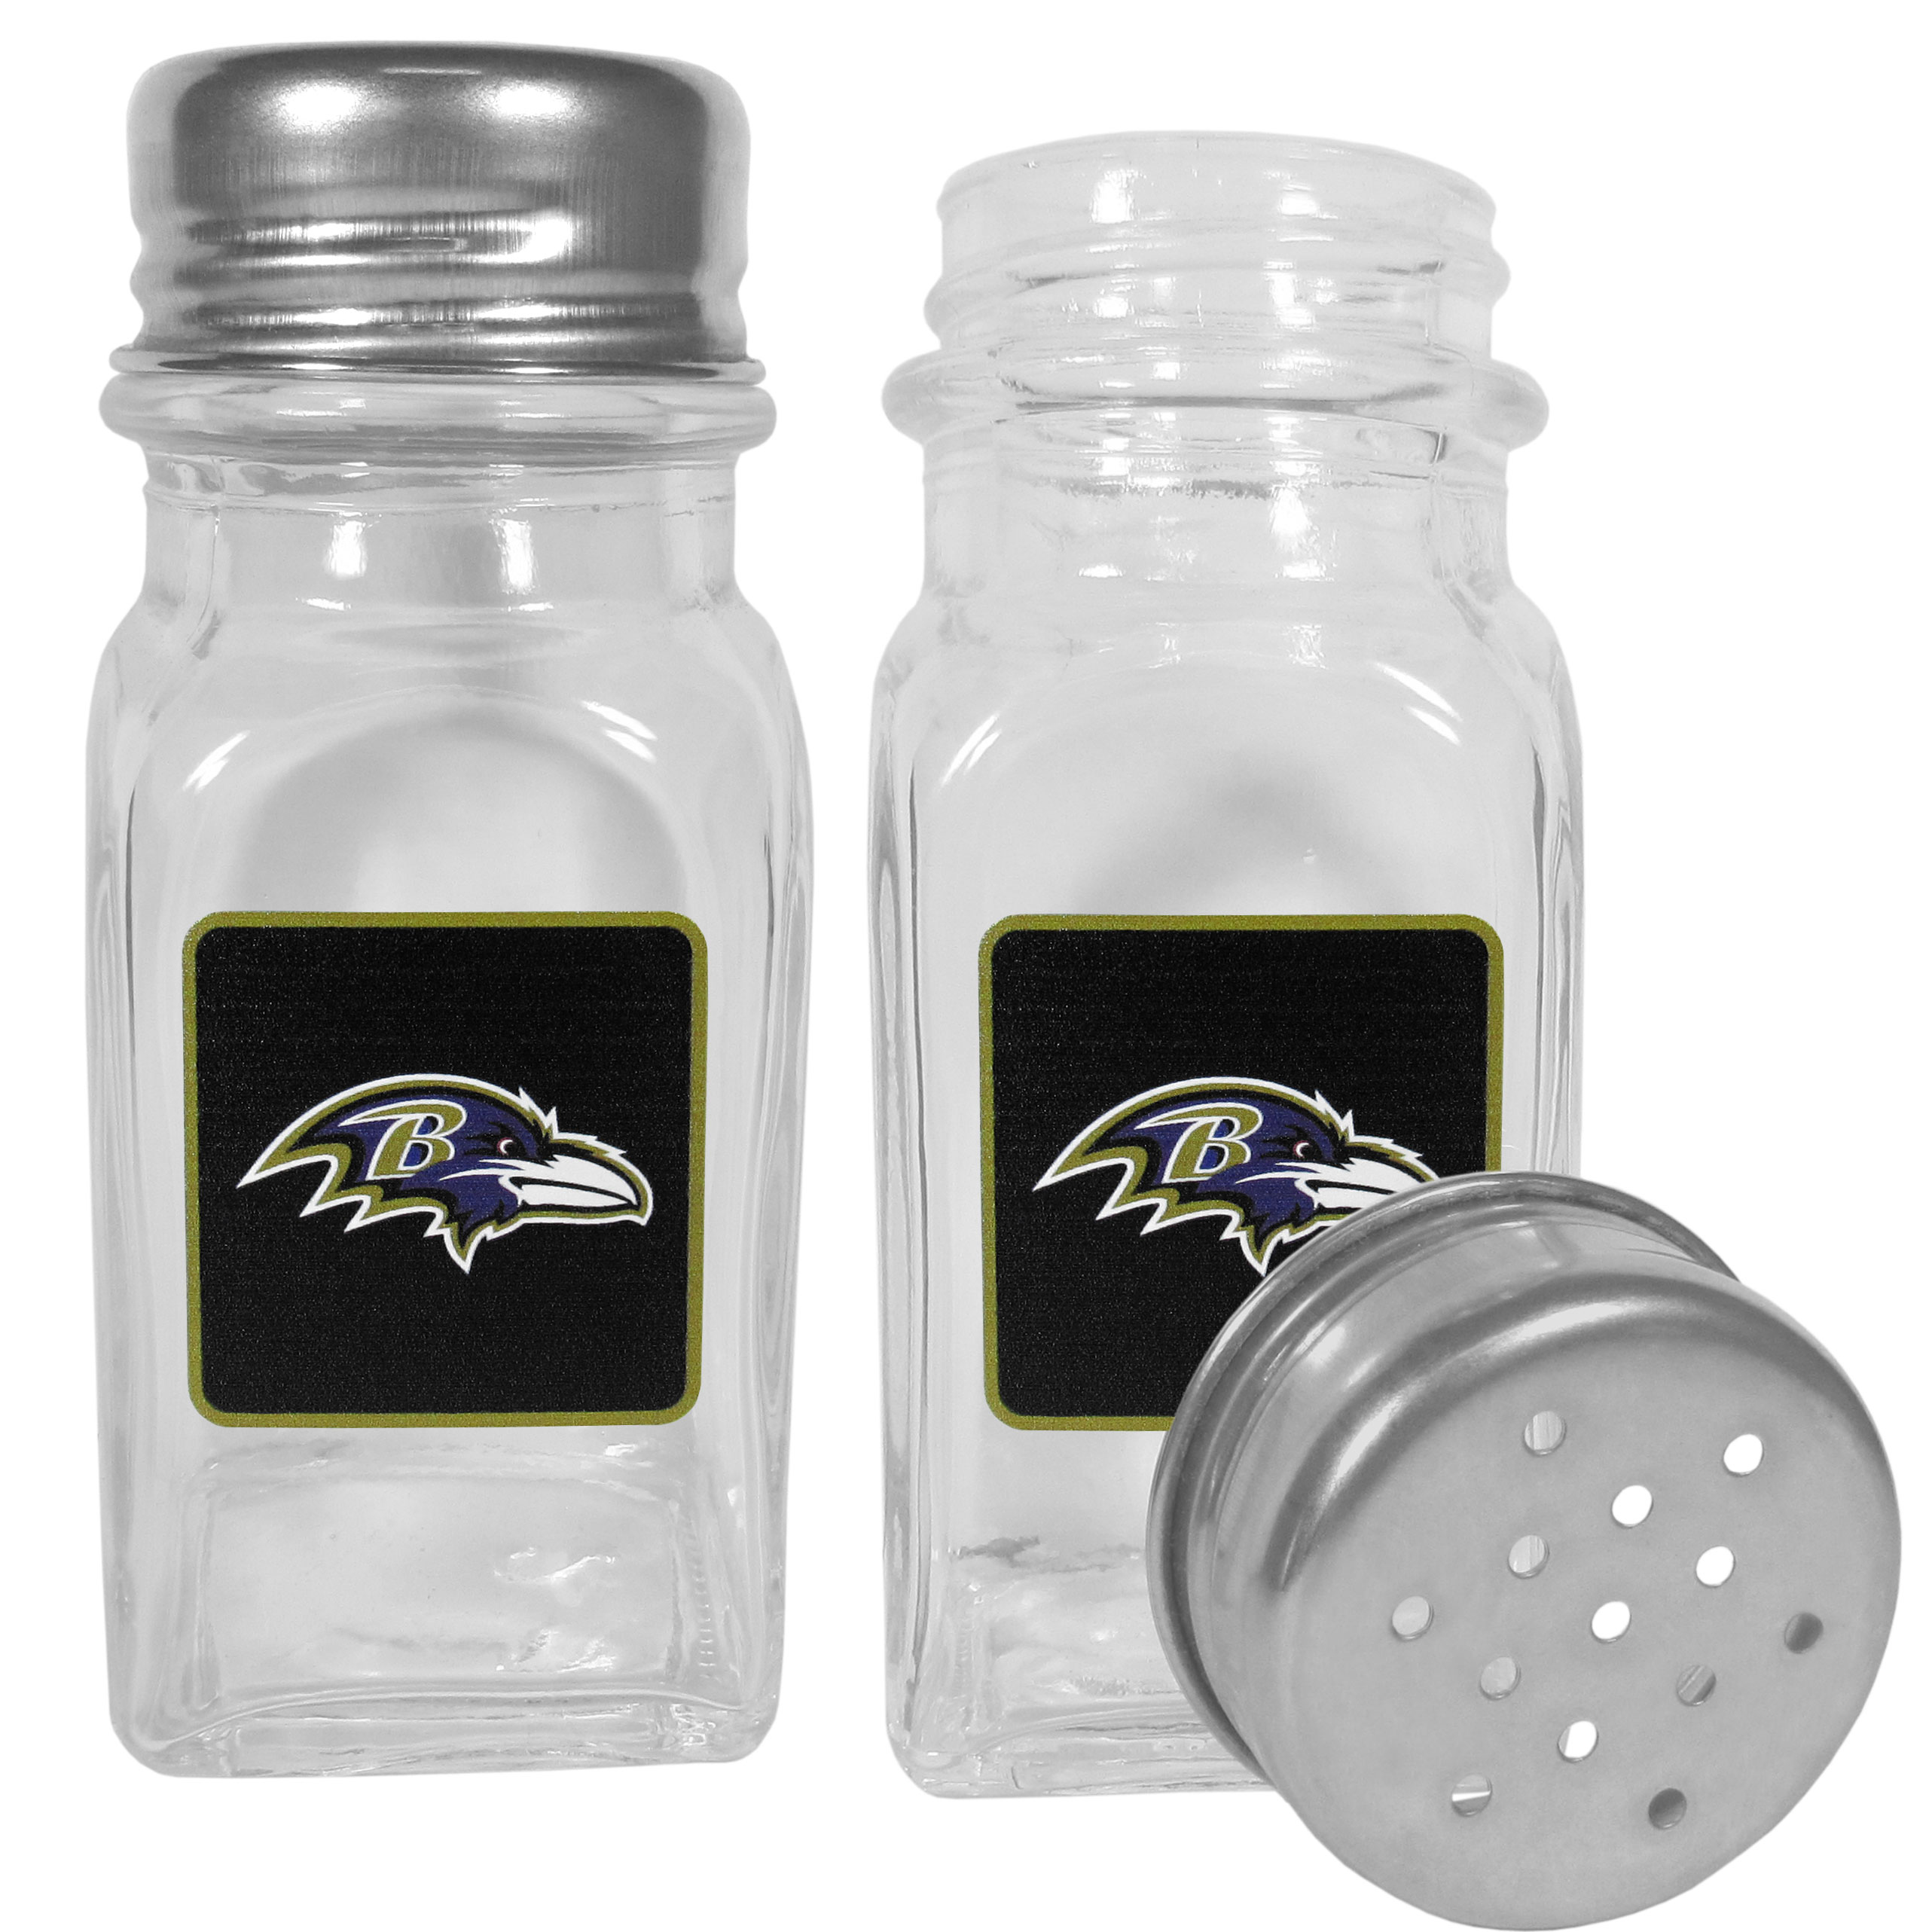 Baltimore Ravens Graphics Salt and Pepper Shaker - No tailgate party is complete without your Baltimore Ravens salt & pepper shakers featuring bright team logos. The diner replica salt and pepper shakers are glass with screw top lids. These team shakers are a great grill accessory whether you are barbecuing on the patio, picnicing or having a game day party.